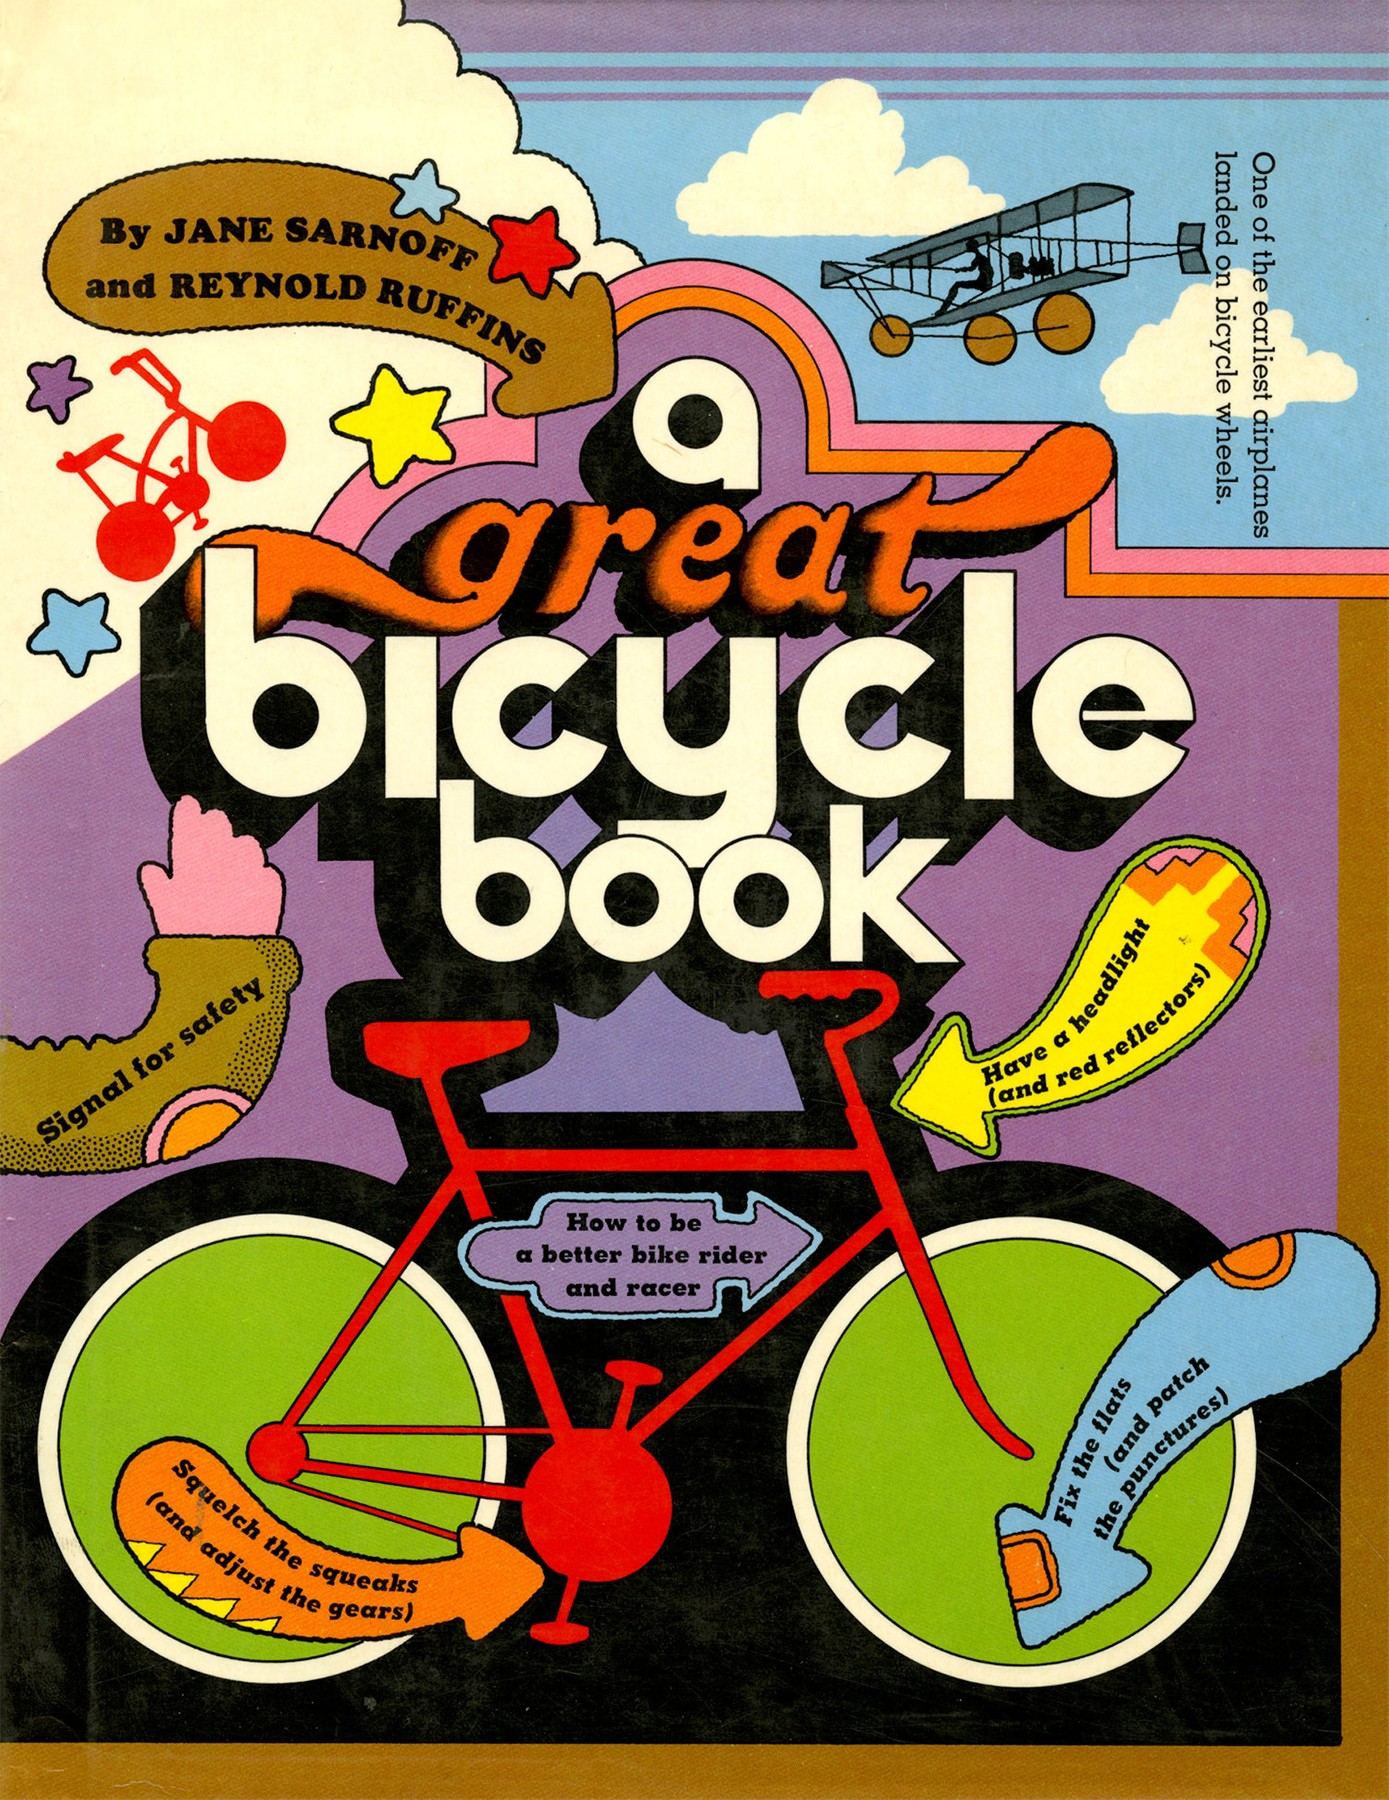 bicycle-book-cover.jpg?format=1500w